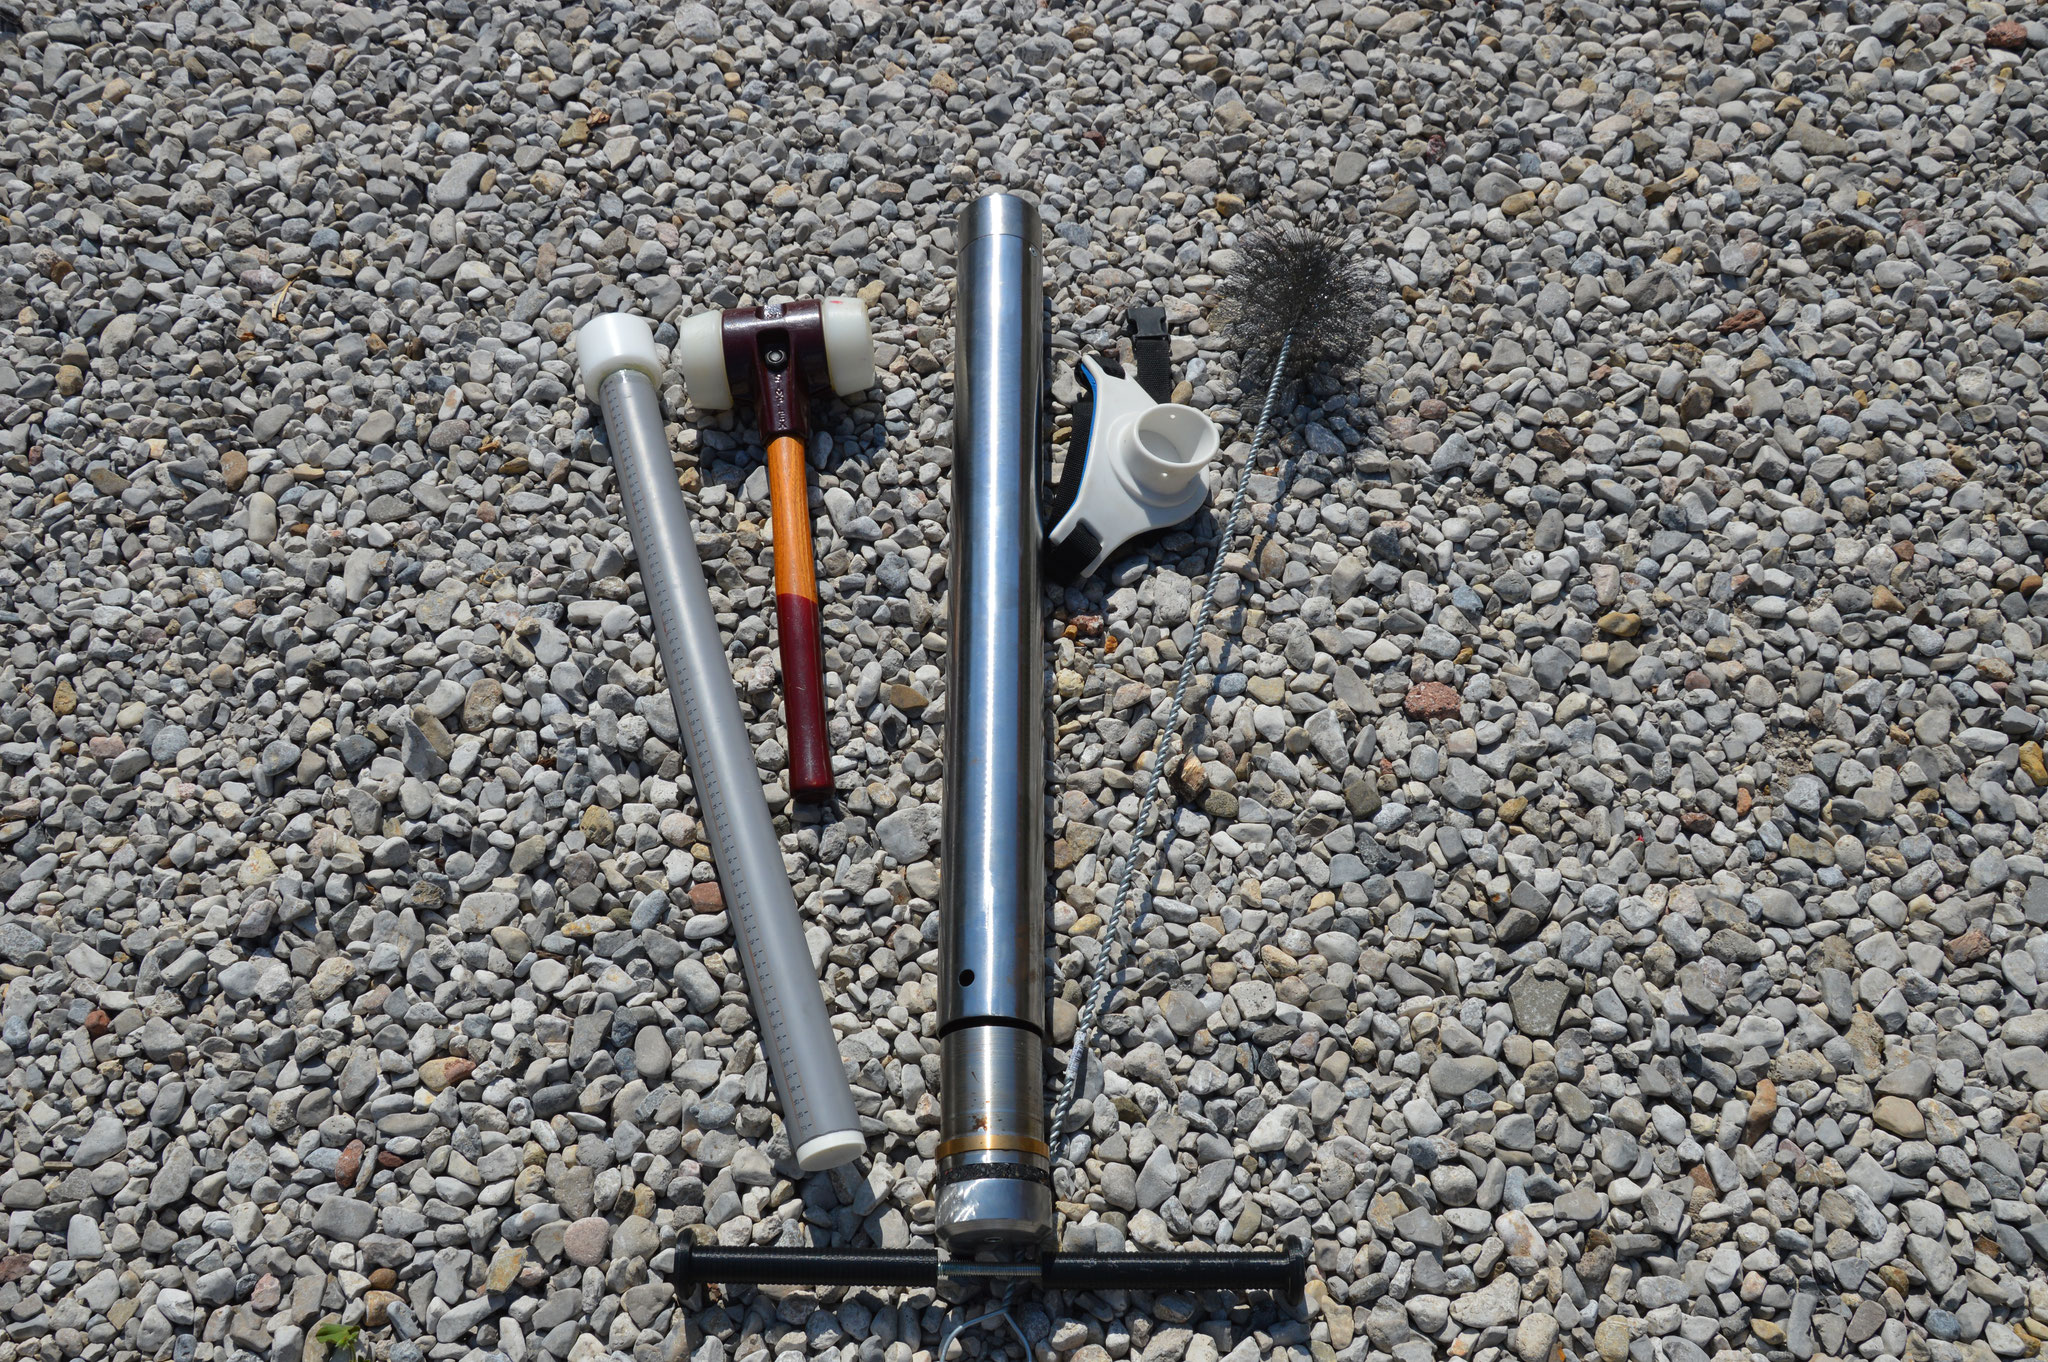 Manual soil corer to install MR tubes